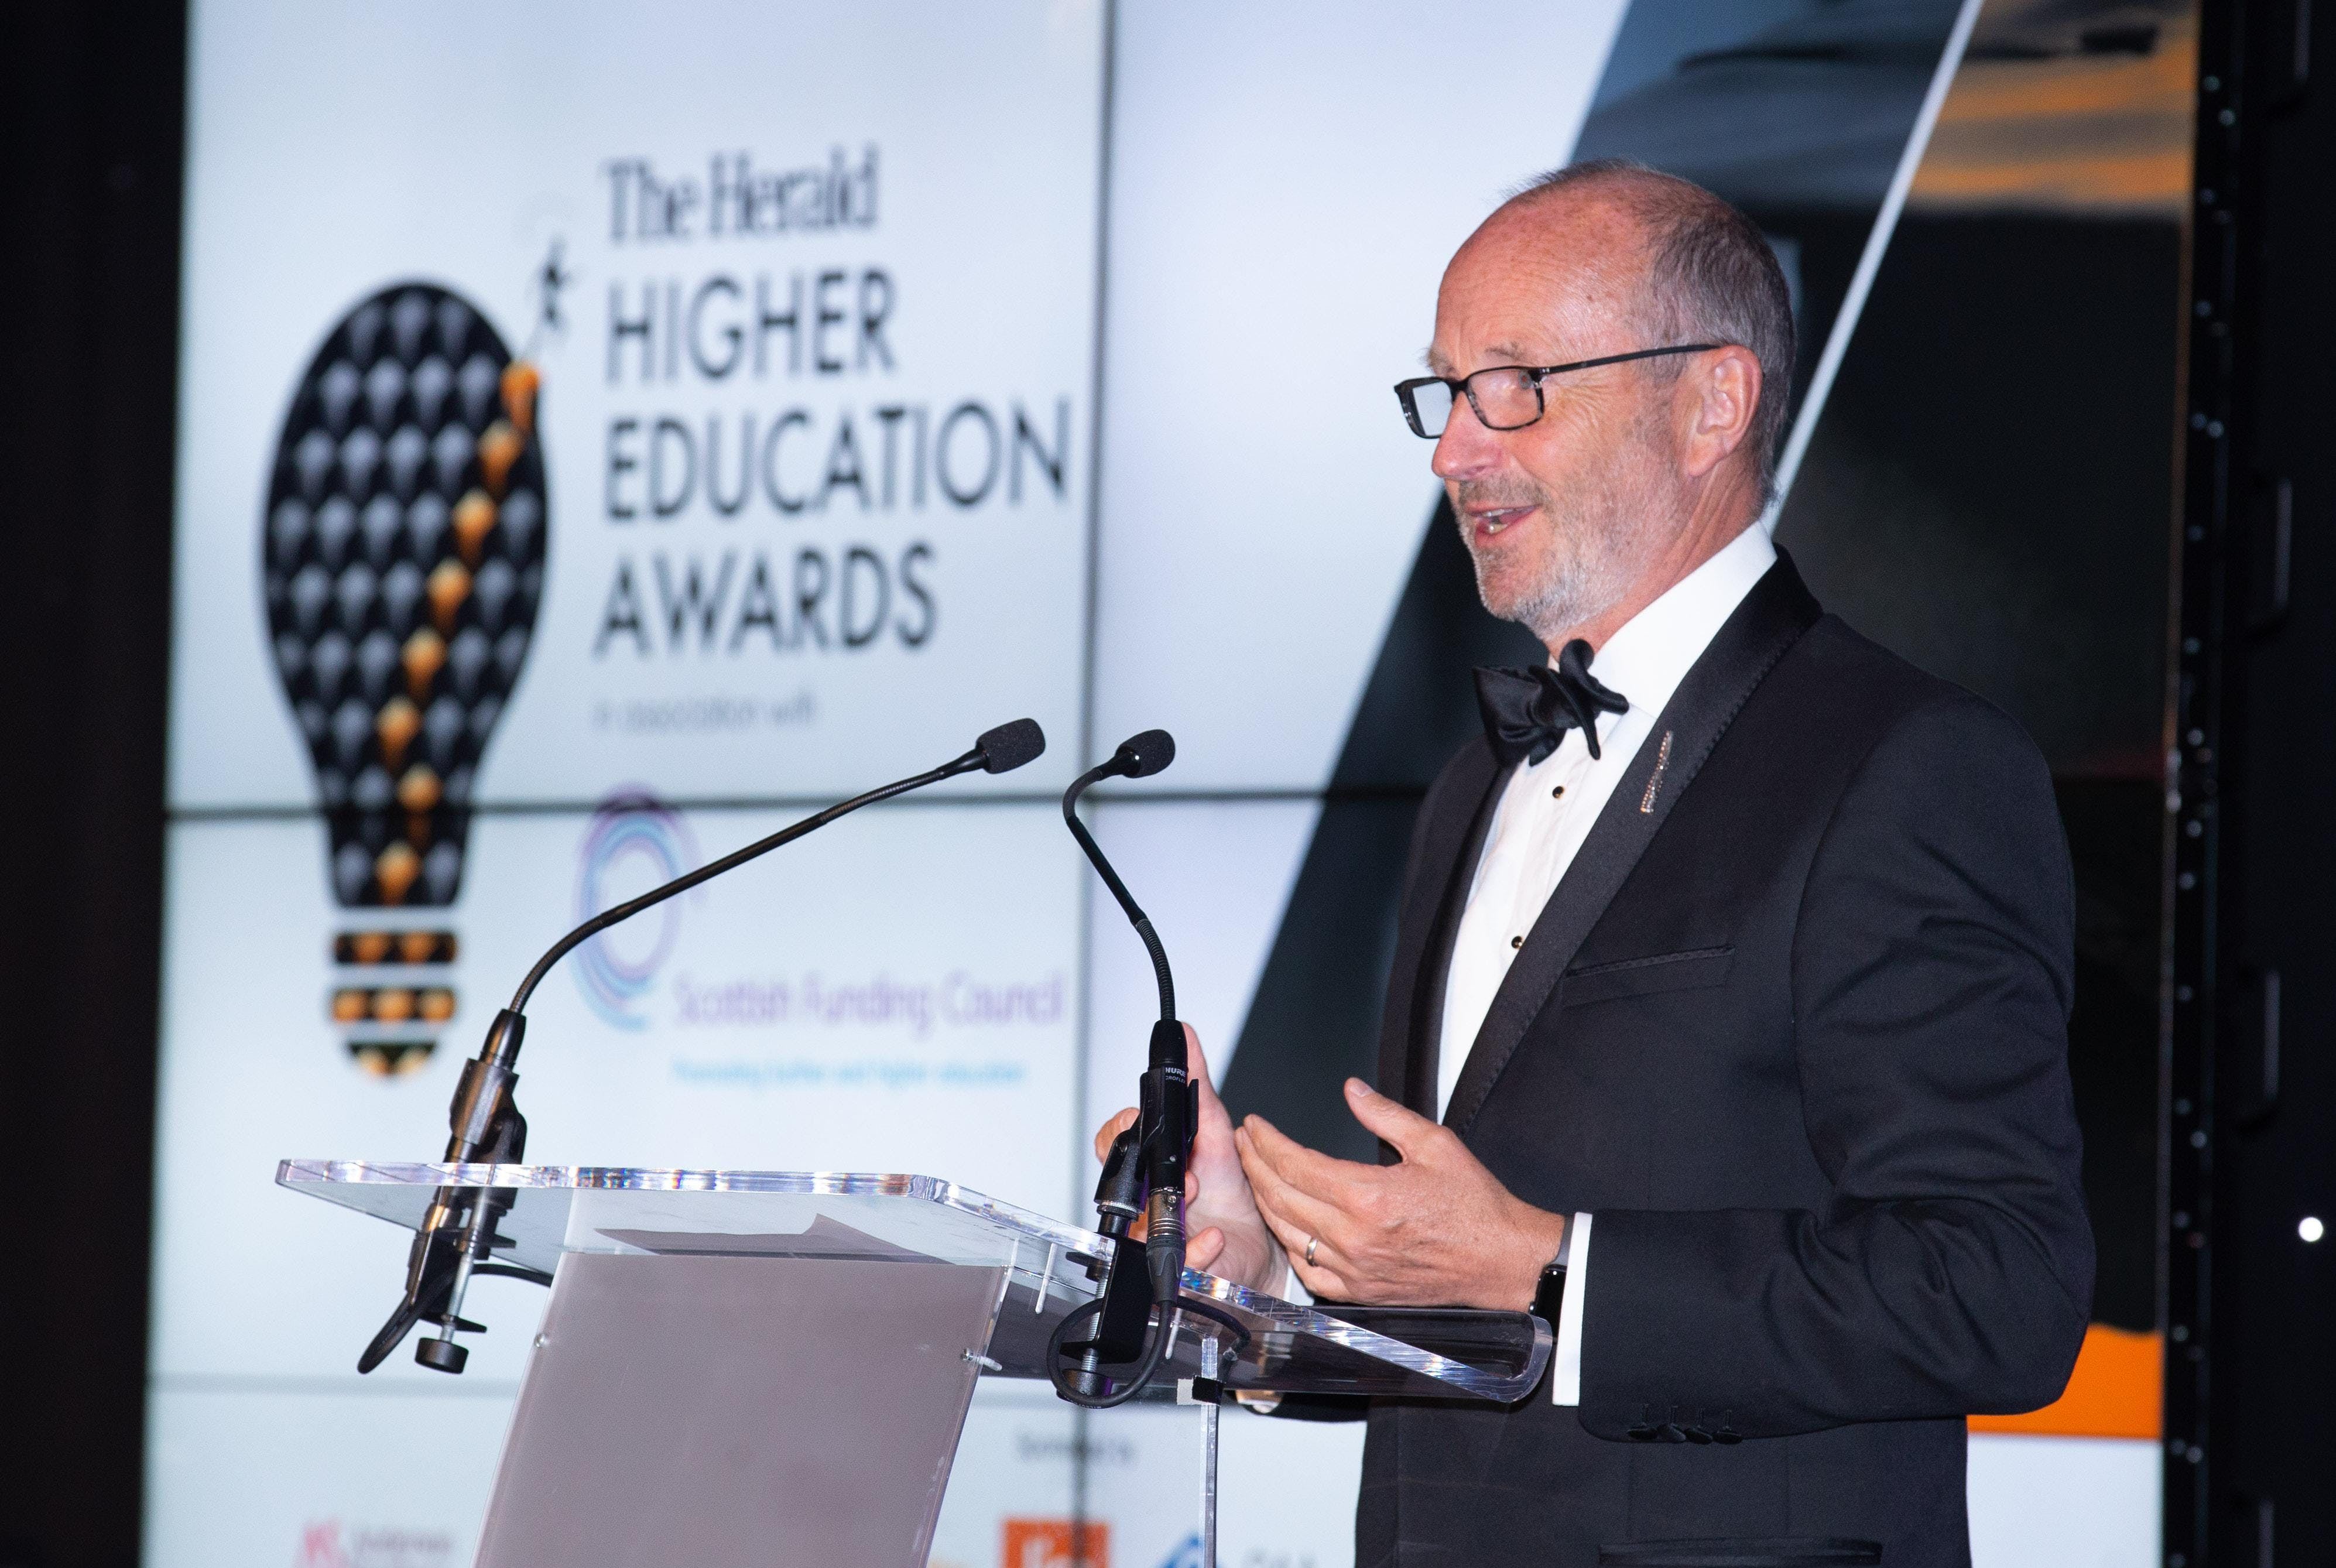 The Herald Higher Education Awards 2019